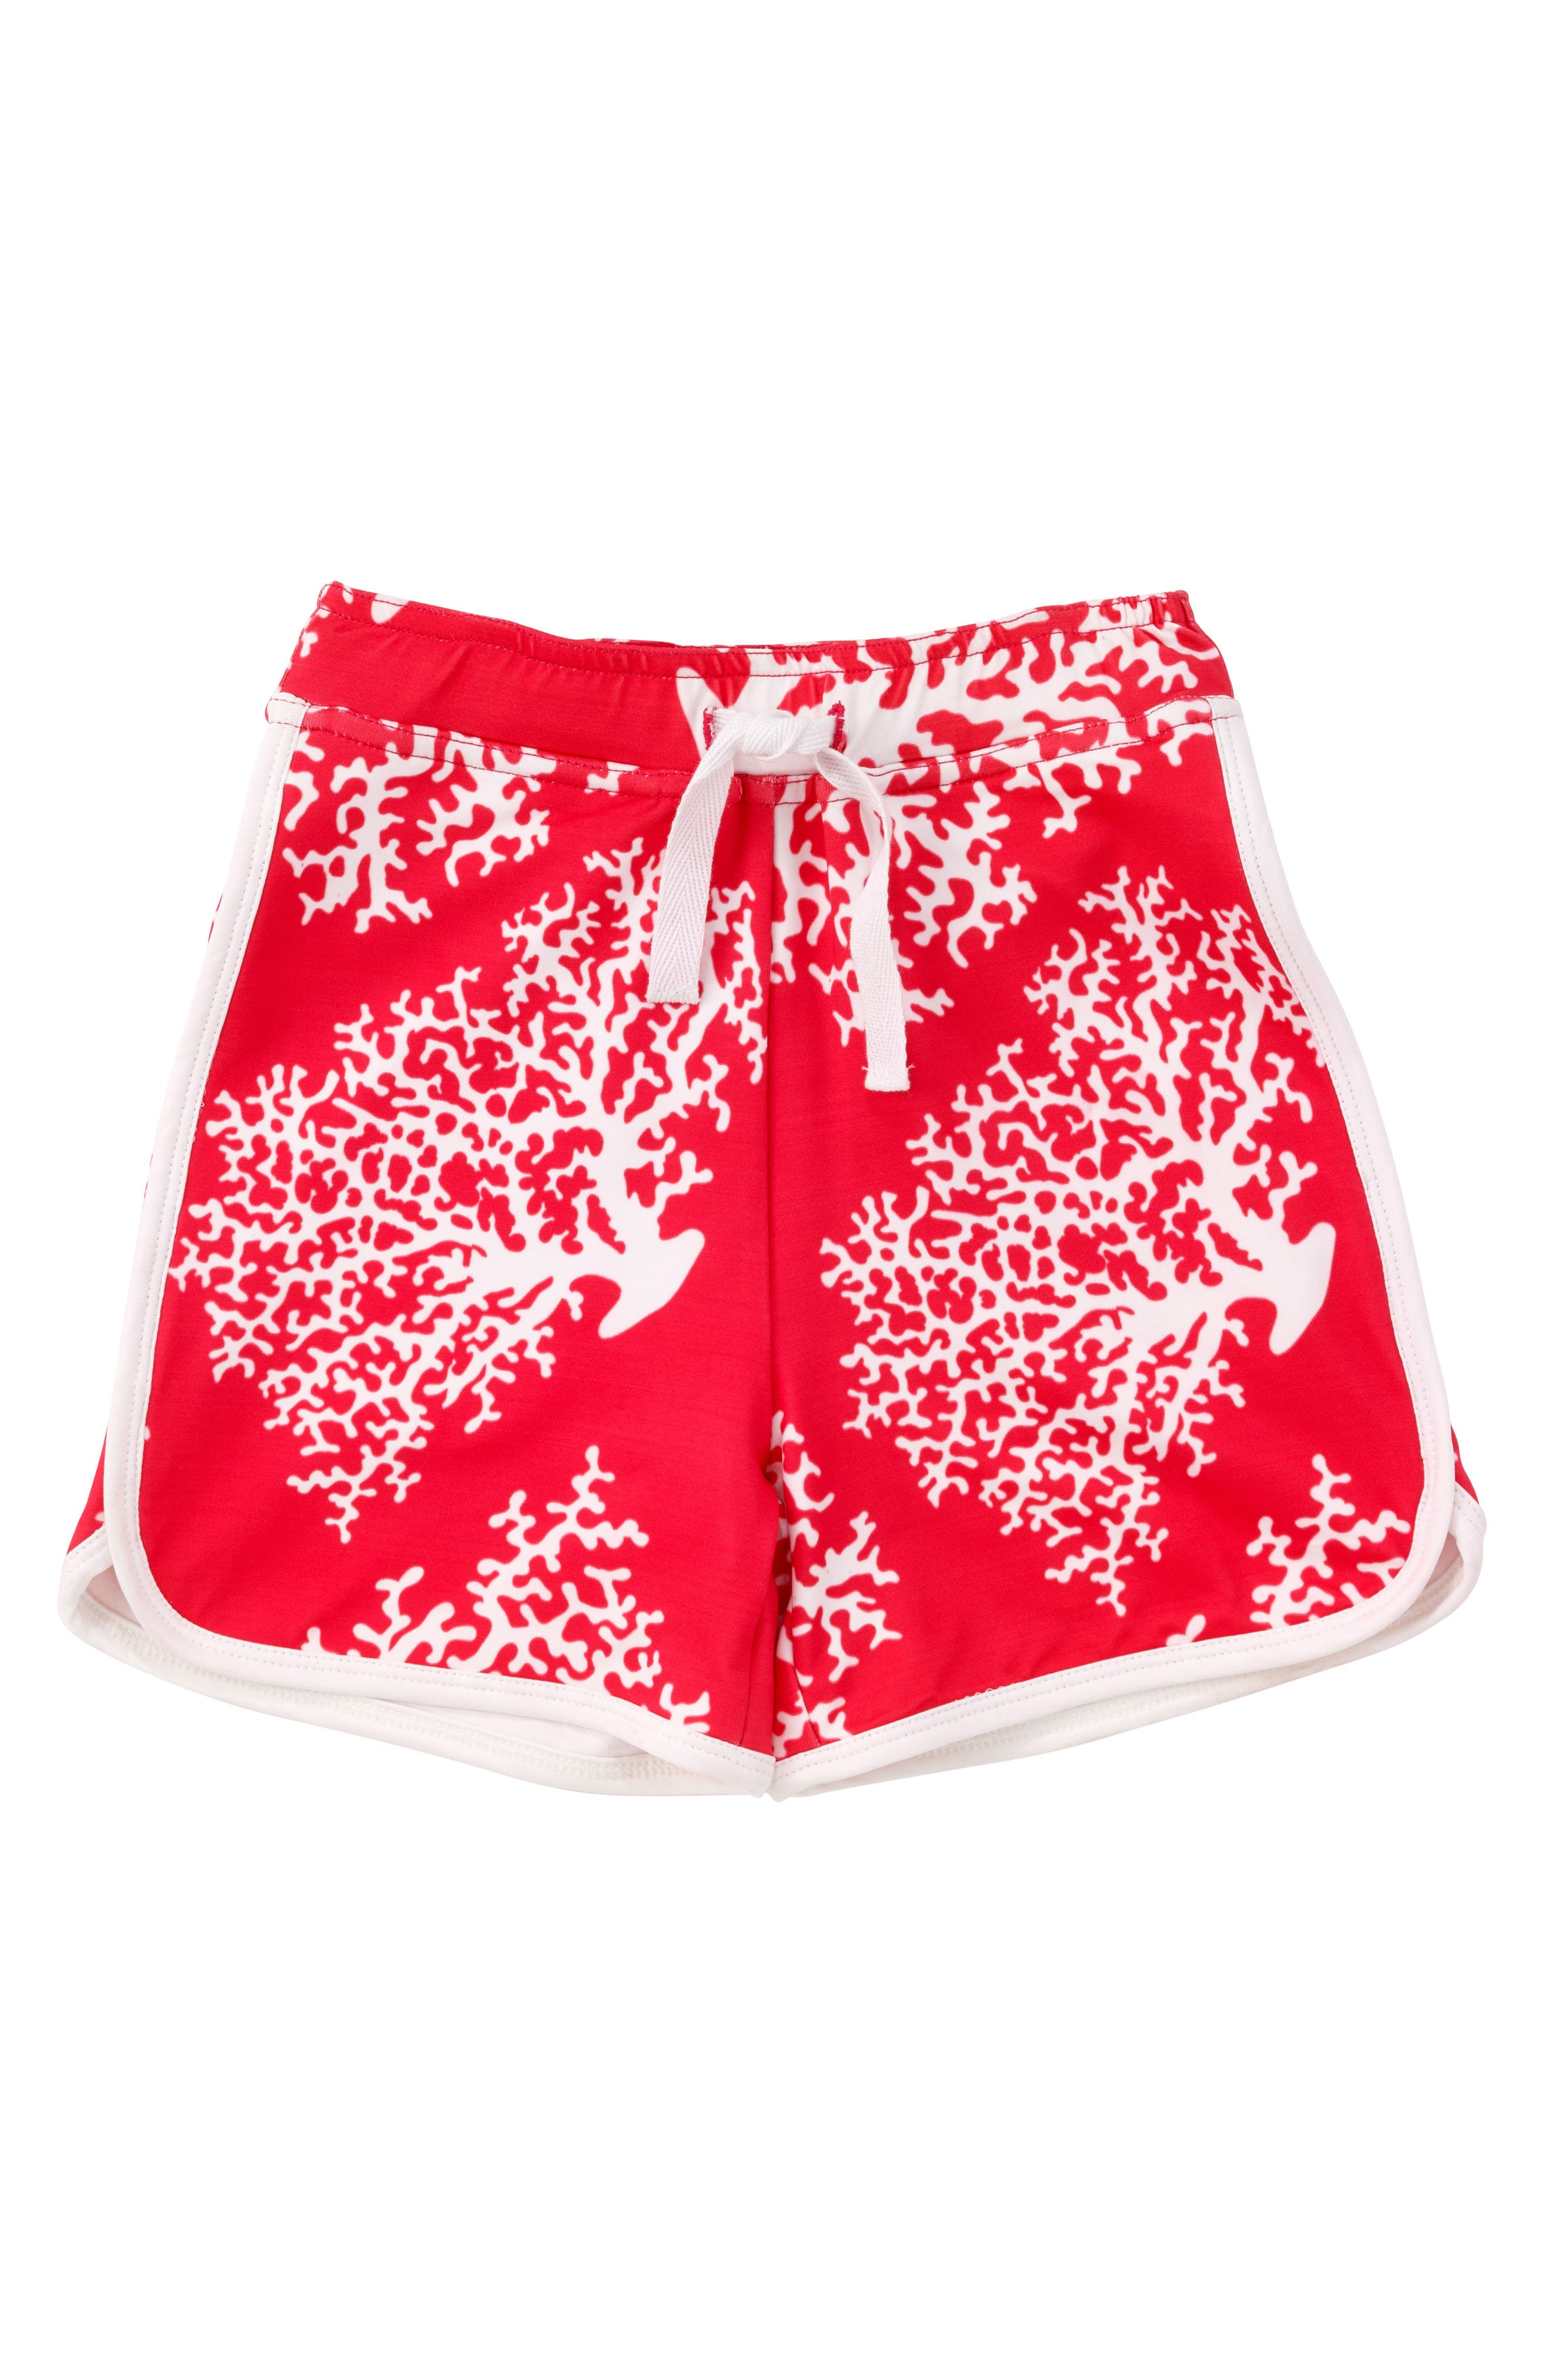 Coral Swim Trunks,                         Main,                         color, 600